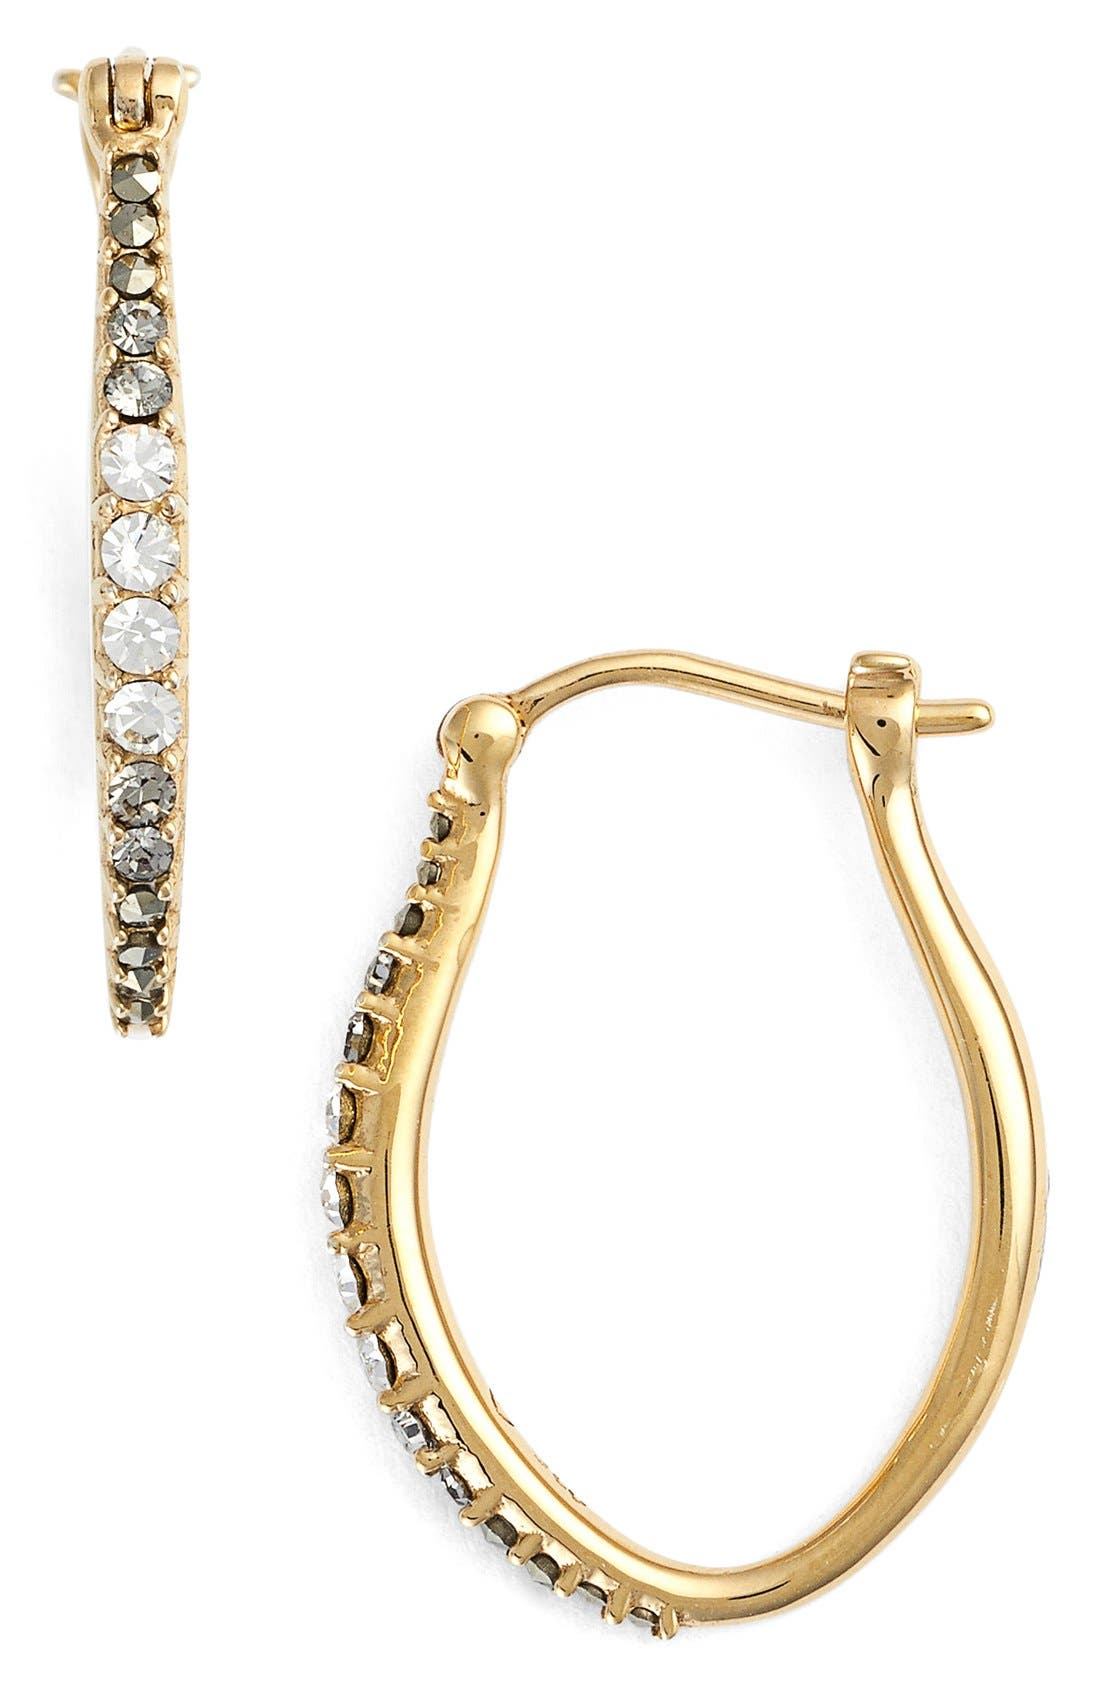 Marcasite & Swarovski Crystal Hoop Earrings,                             Main thumbnail 1, color,                             GOLD